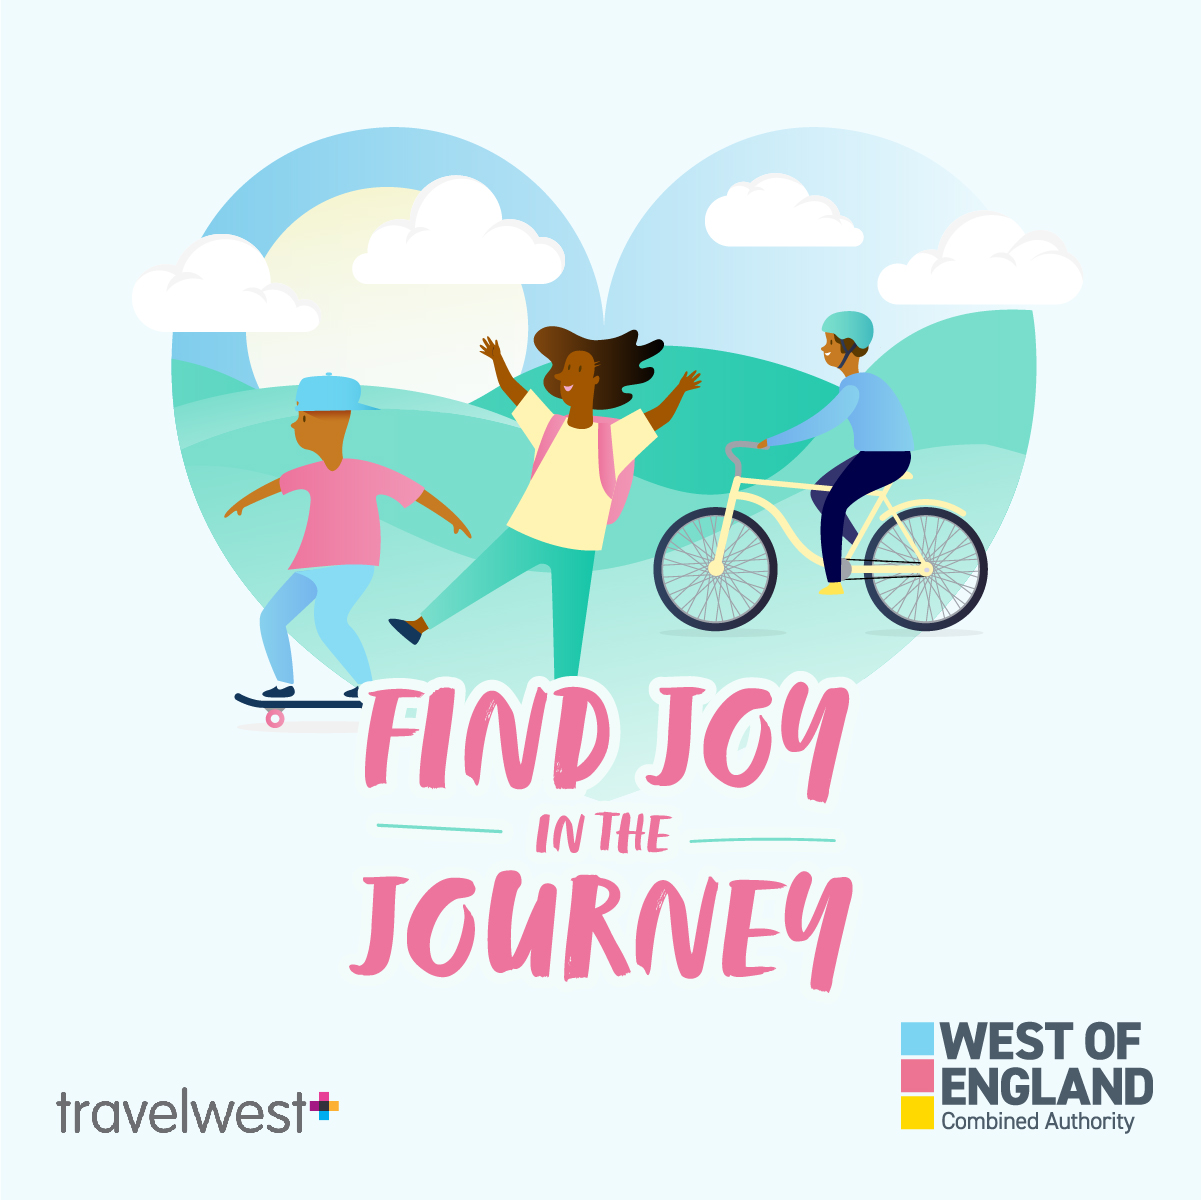 This image shows a graphic of the Find Joy In The Journey campaign